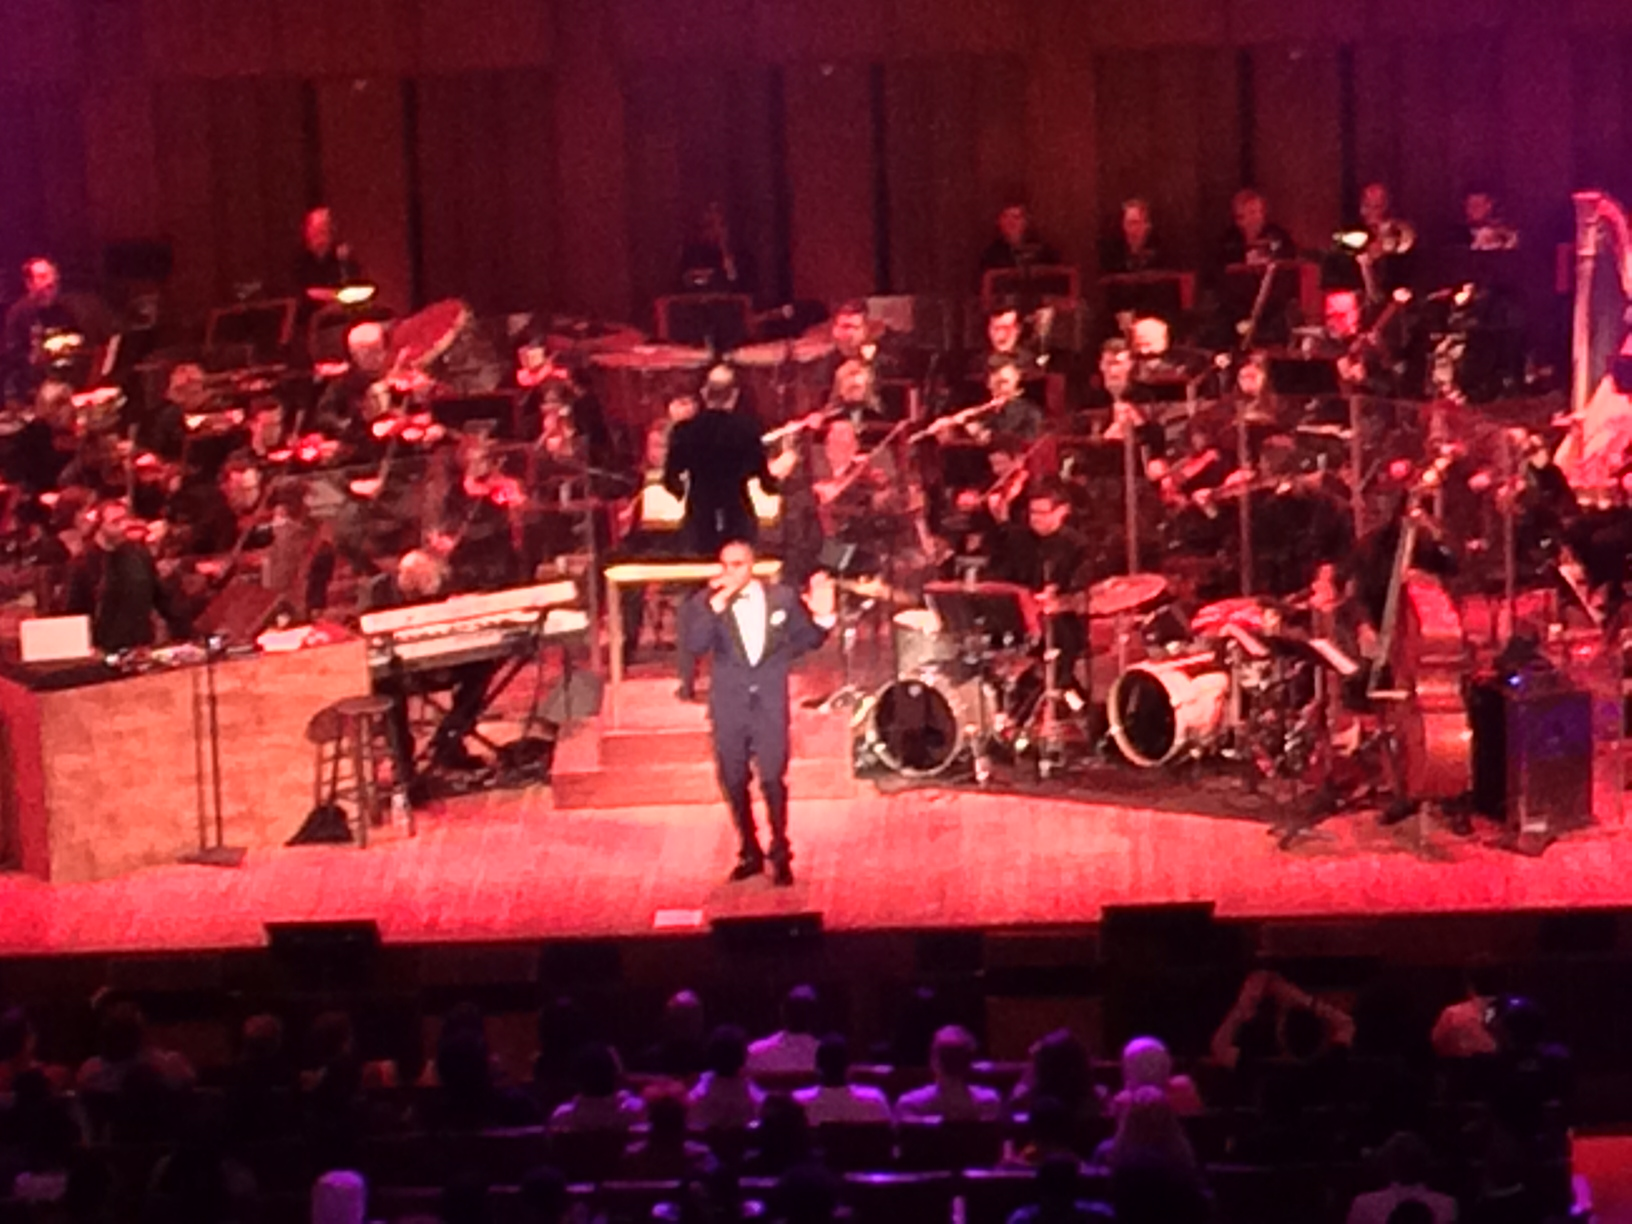 Hip hop artist, Nas and the National Symphony Orchestra at the Kennedy Center.